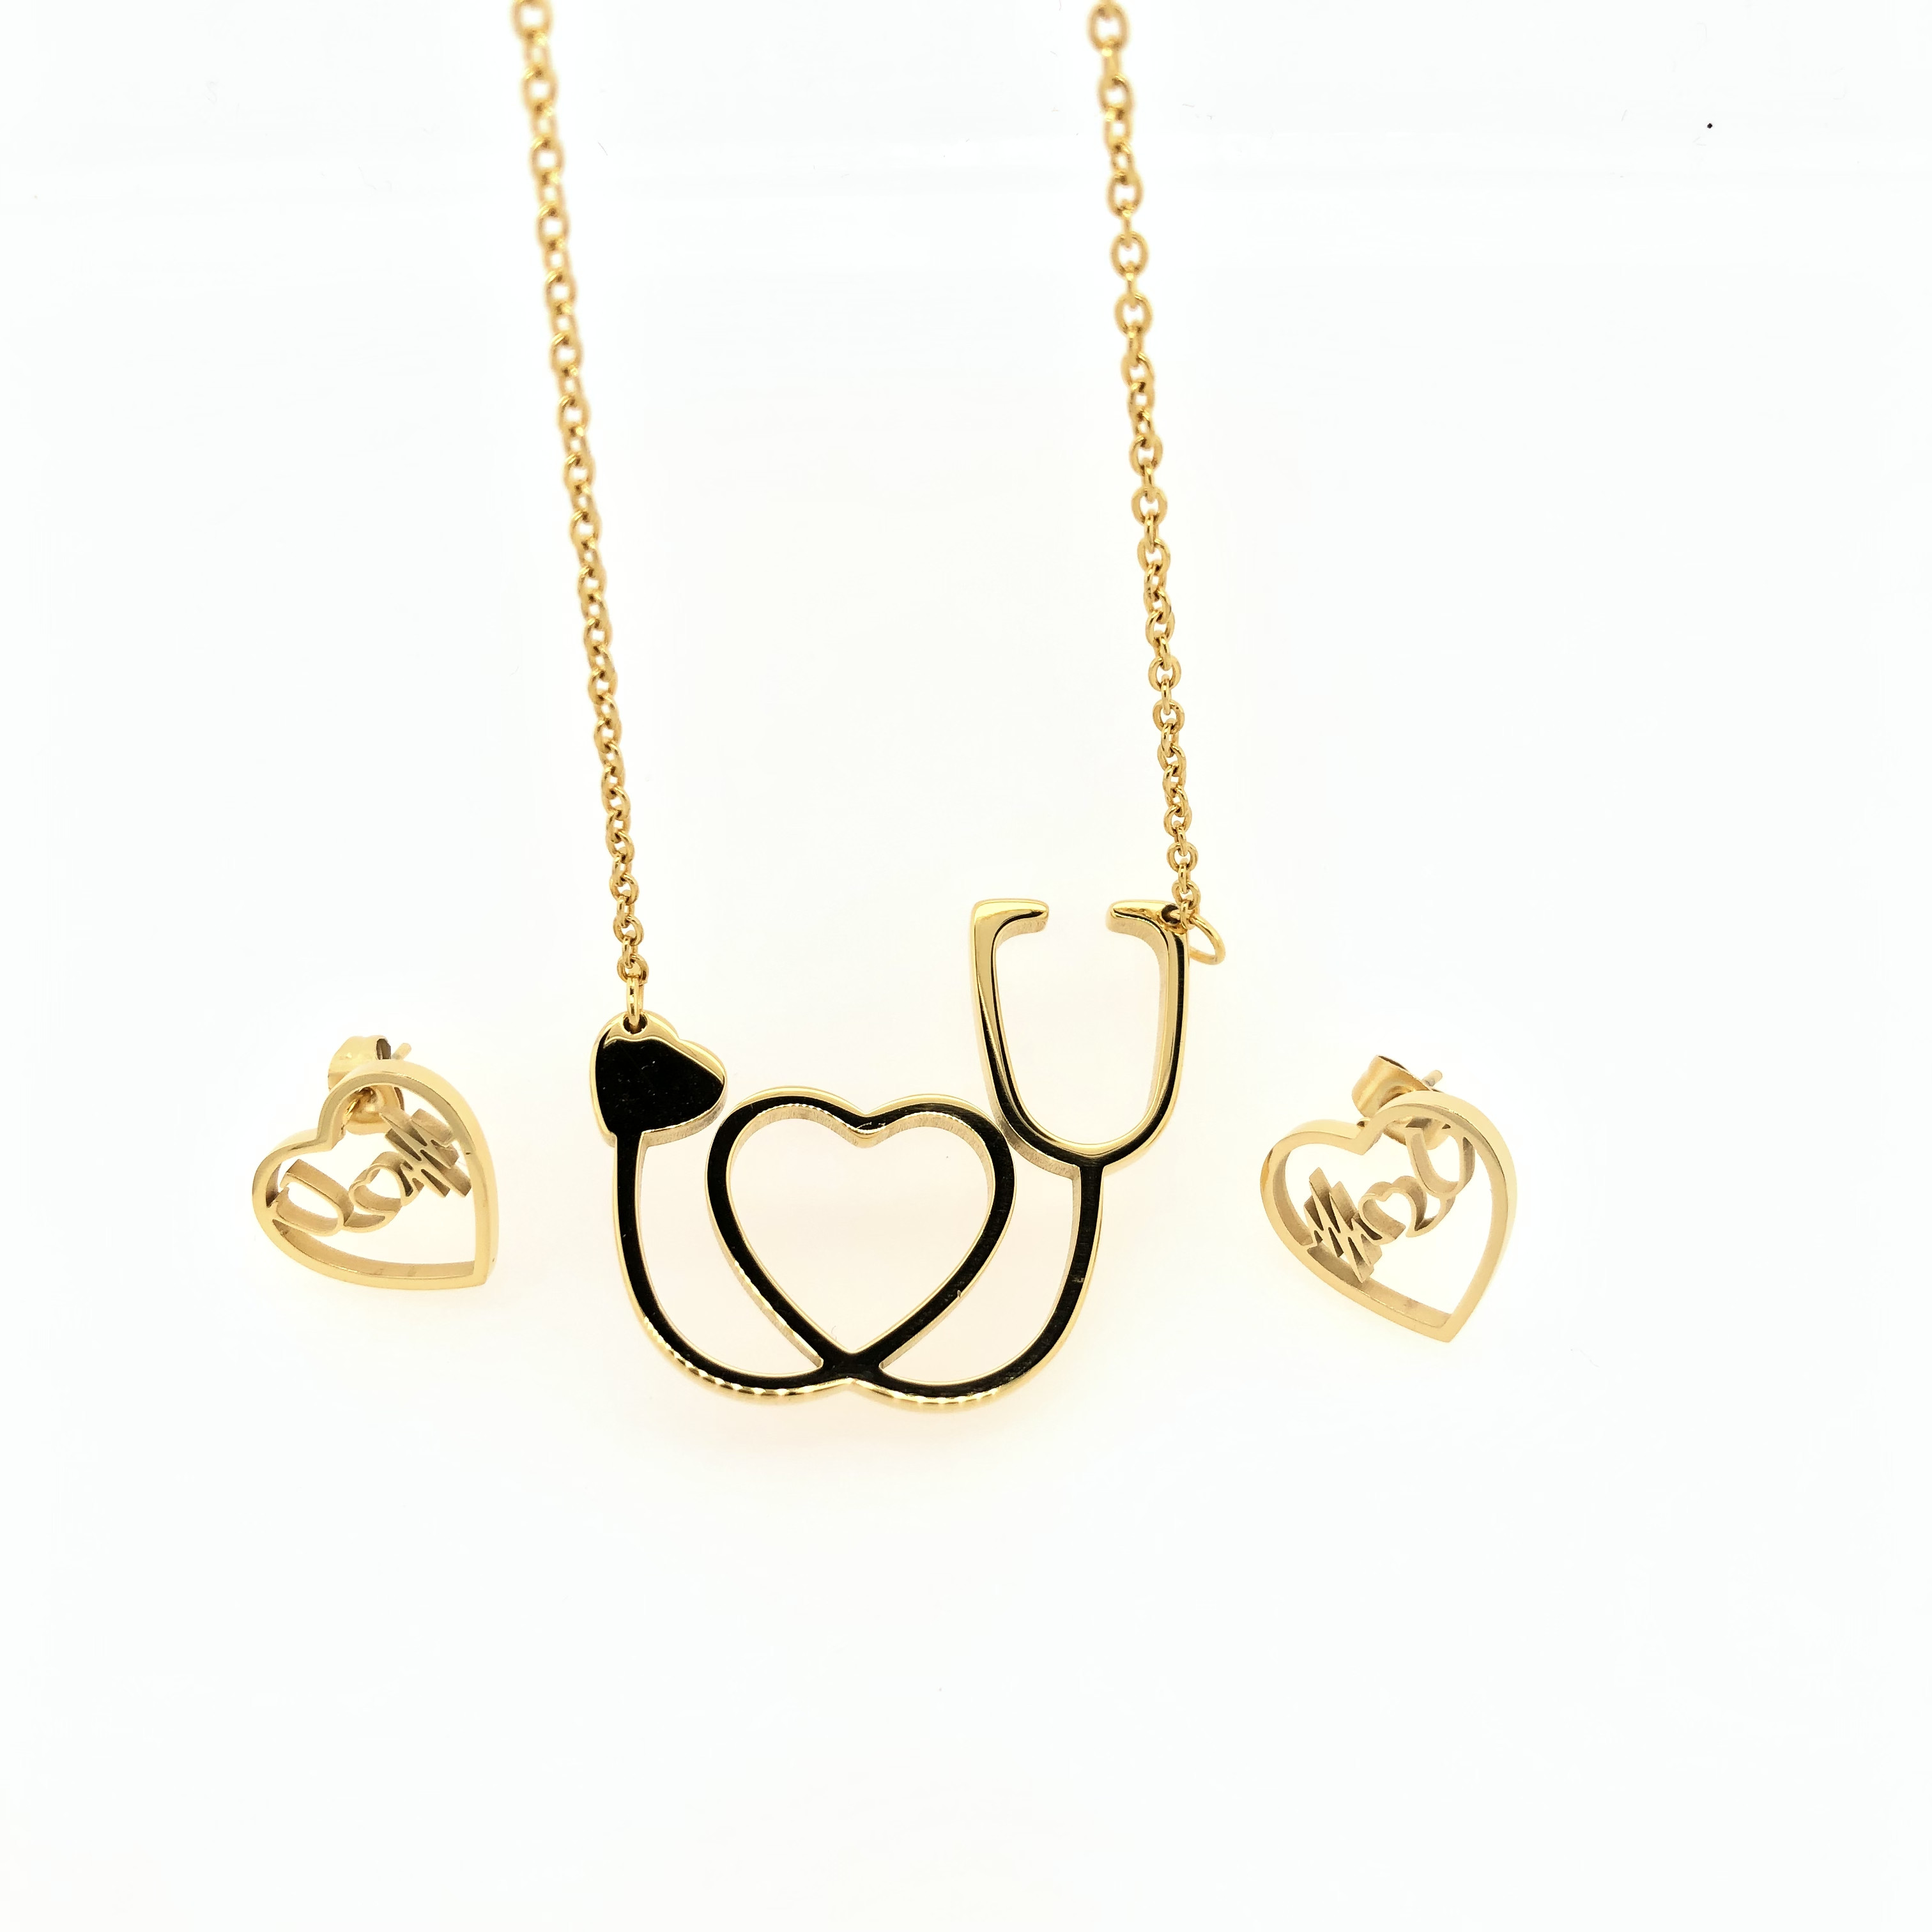 Rose Gold Stainless Steel Love Stethoscope Jewelry Set Necklace Earrings